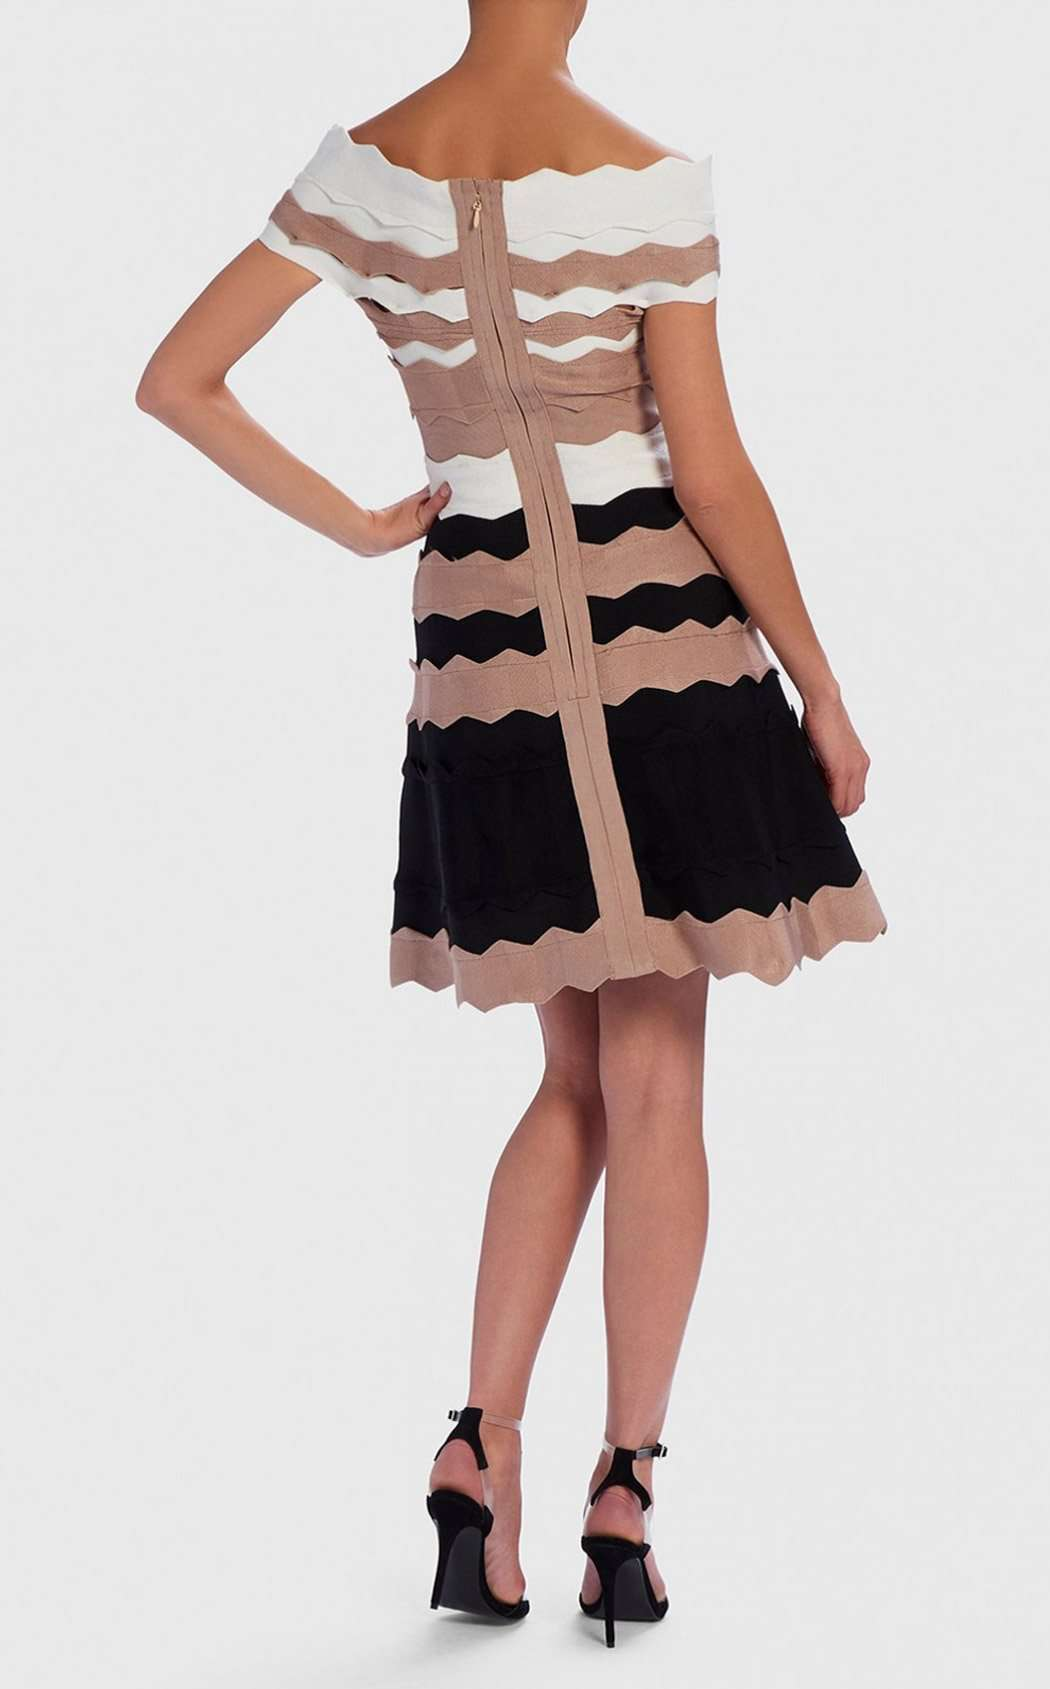 Holt Arianna Dress In Pink | Buy Holt Party & Prom Dresses